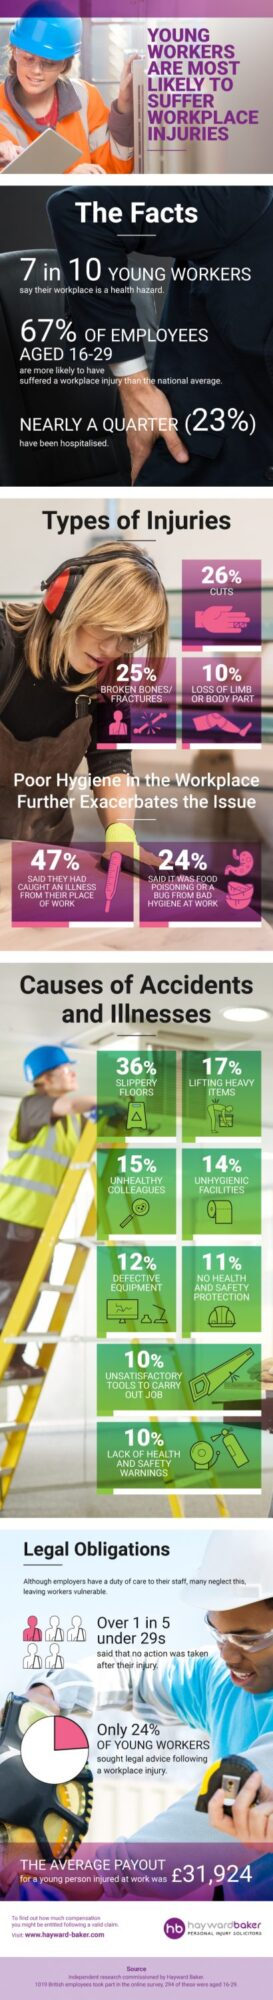 Young workers and work place injury